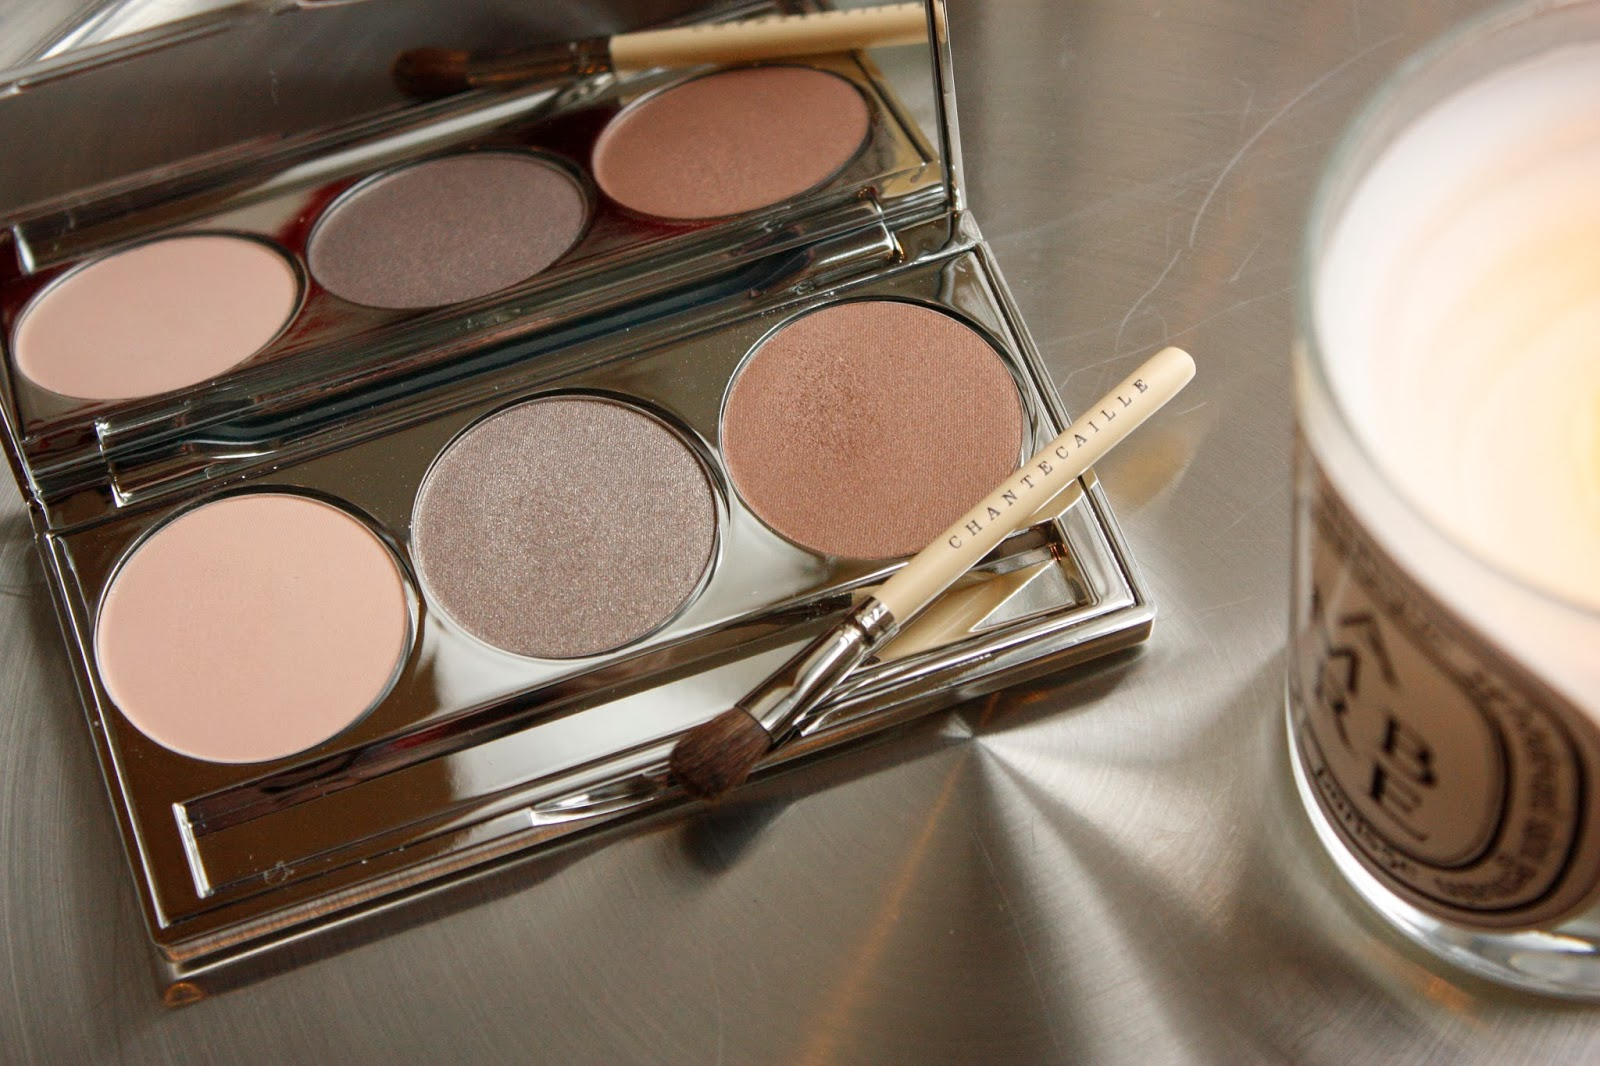 Chantecaille eye shadows